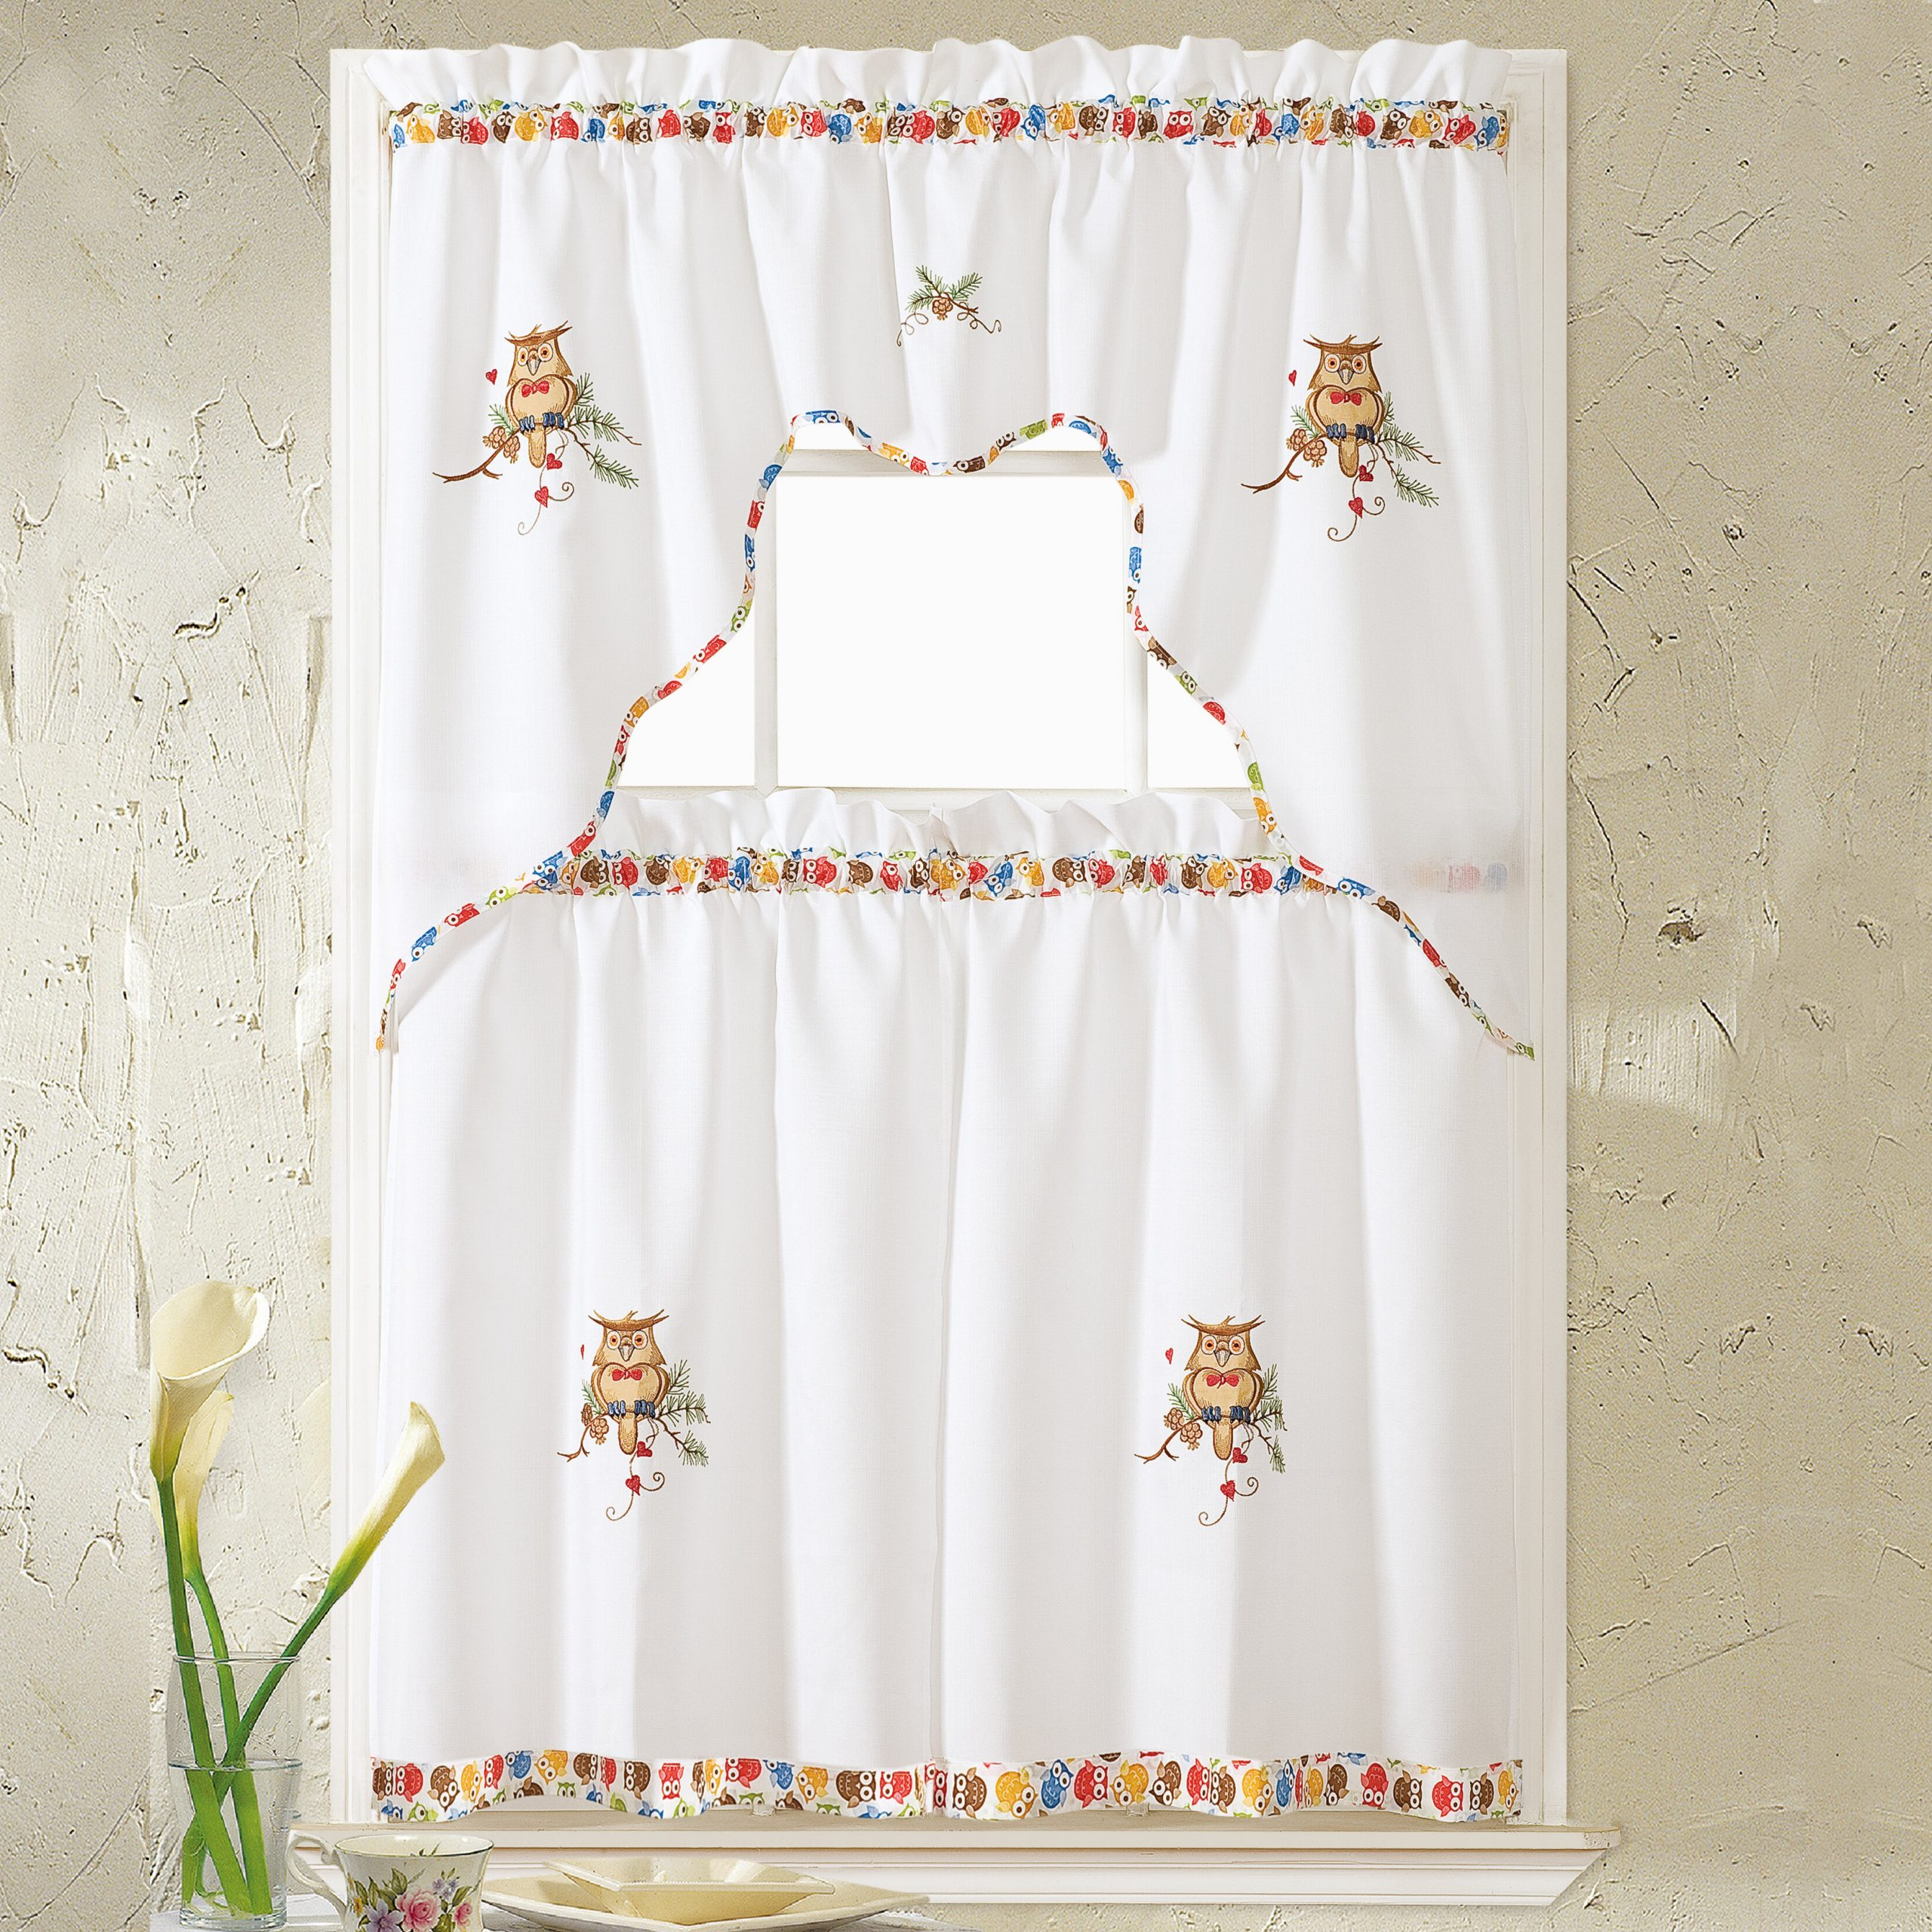 Window Curtains Sets With Colorful Marketplace Vegetable And Sunflower Print With Most Up To Date Hartlepool Owl 36'' Kitchen Curtain (View 17 of 20)